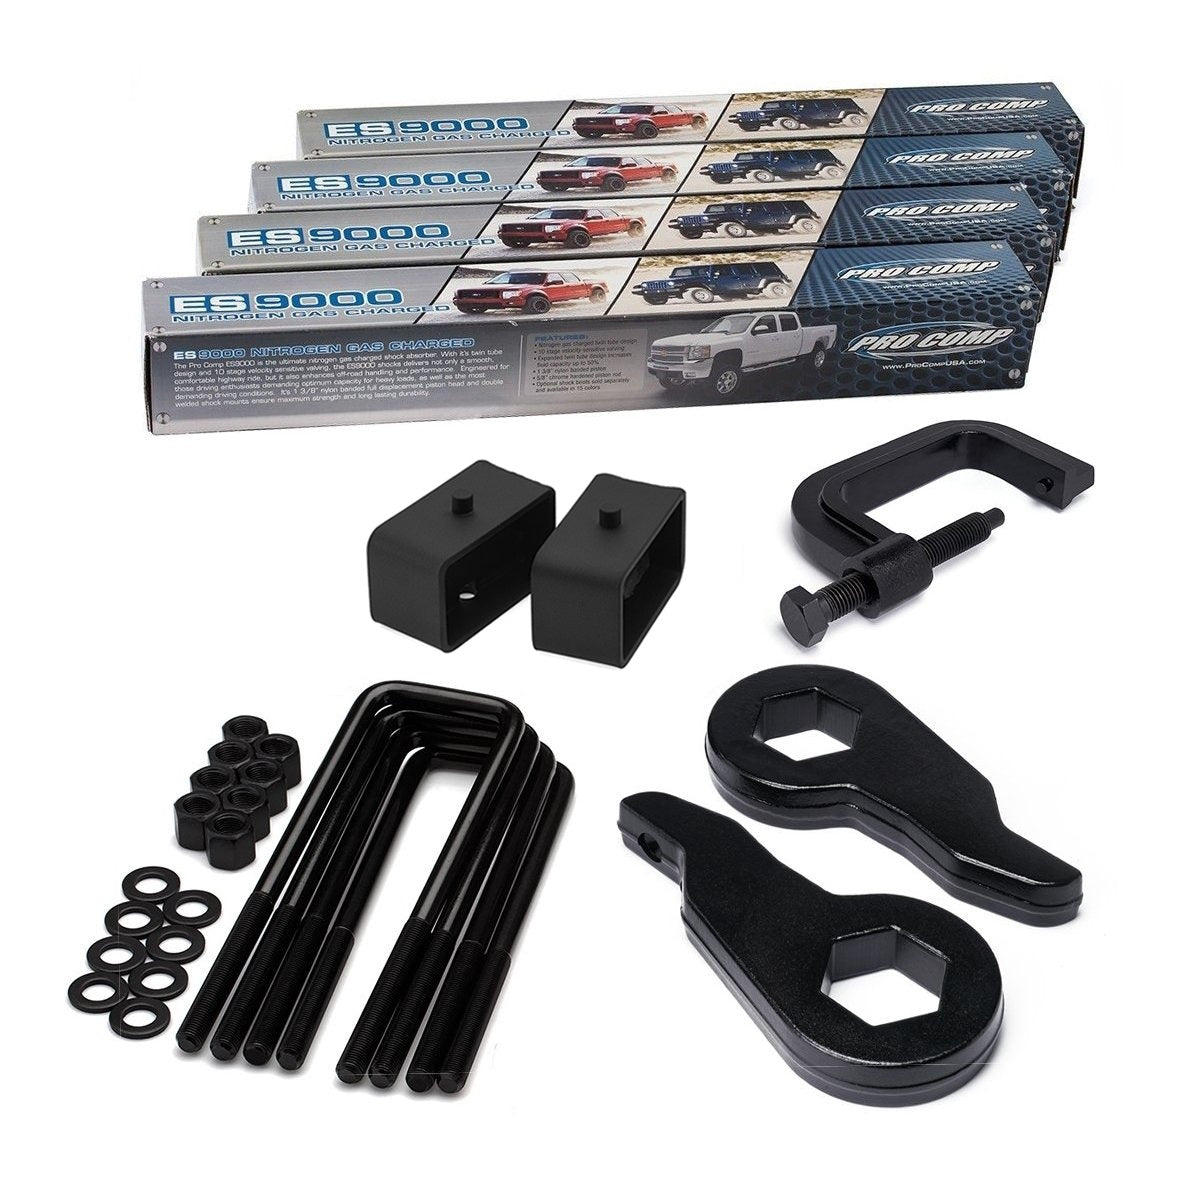 2001-2006 Chevy Avalanche Full Lift Kit with Extended Shocks and Torsion Key Unloading/Removal Tool